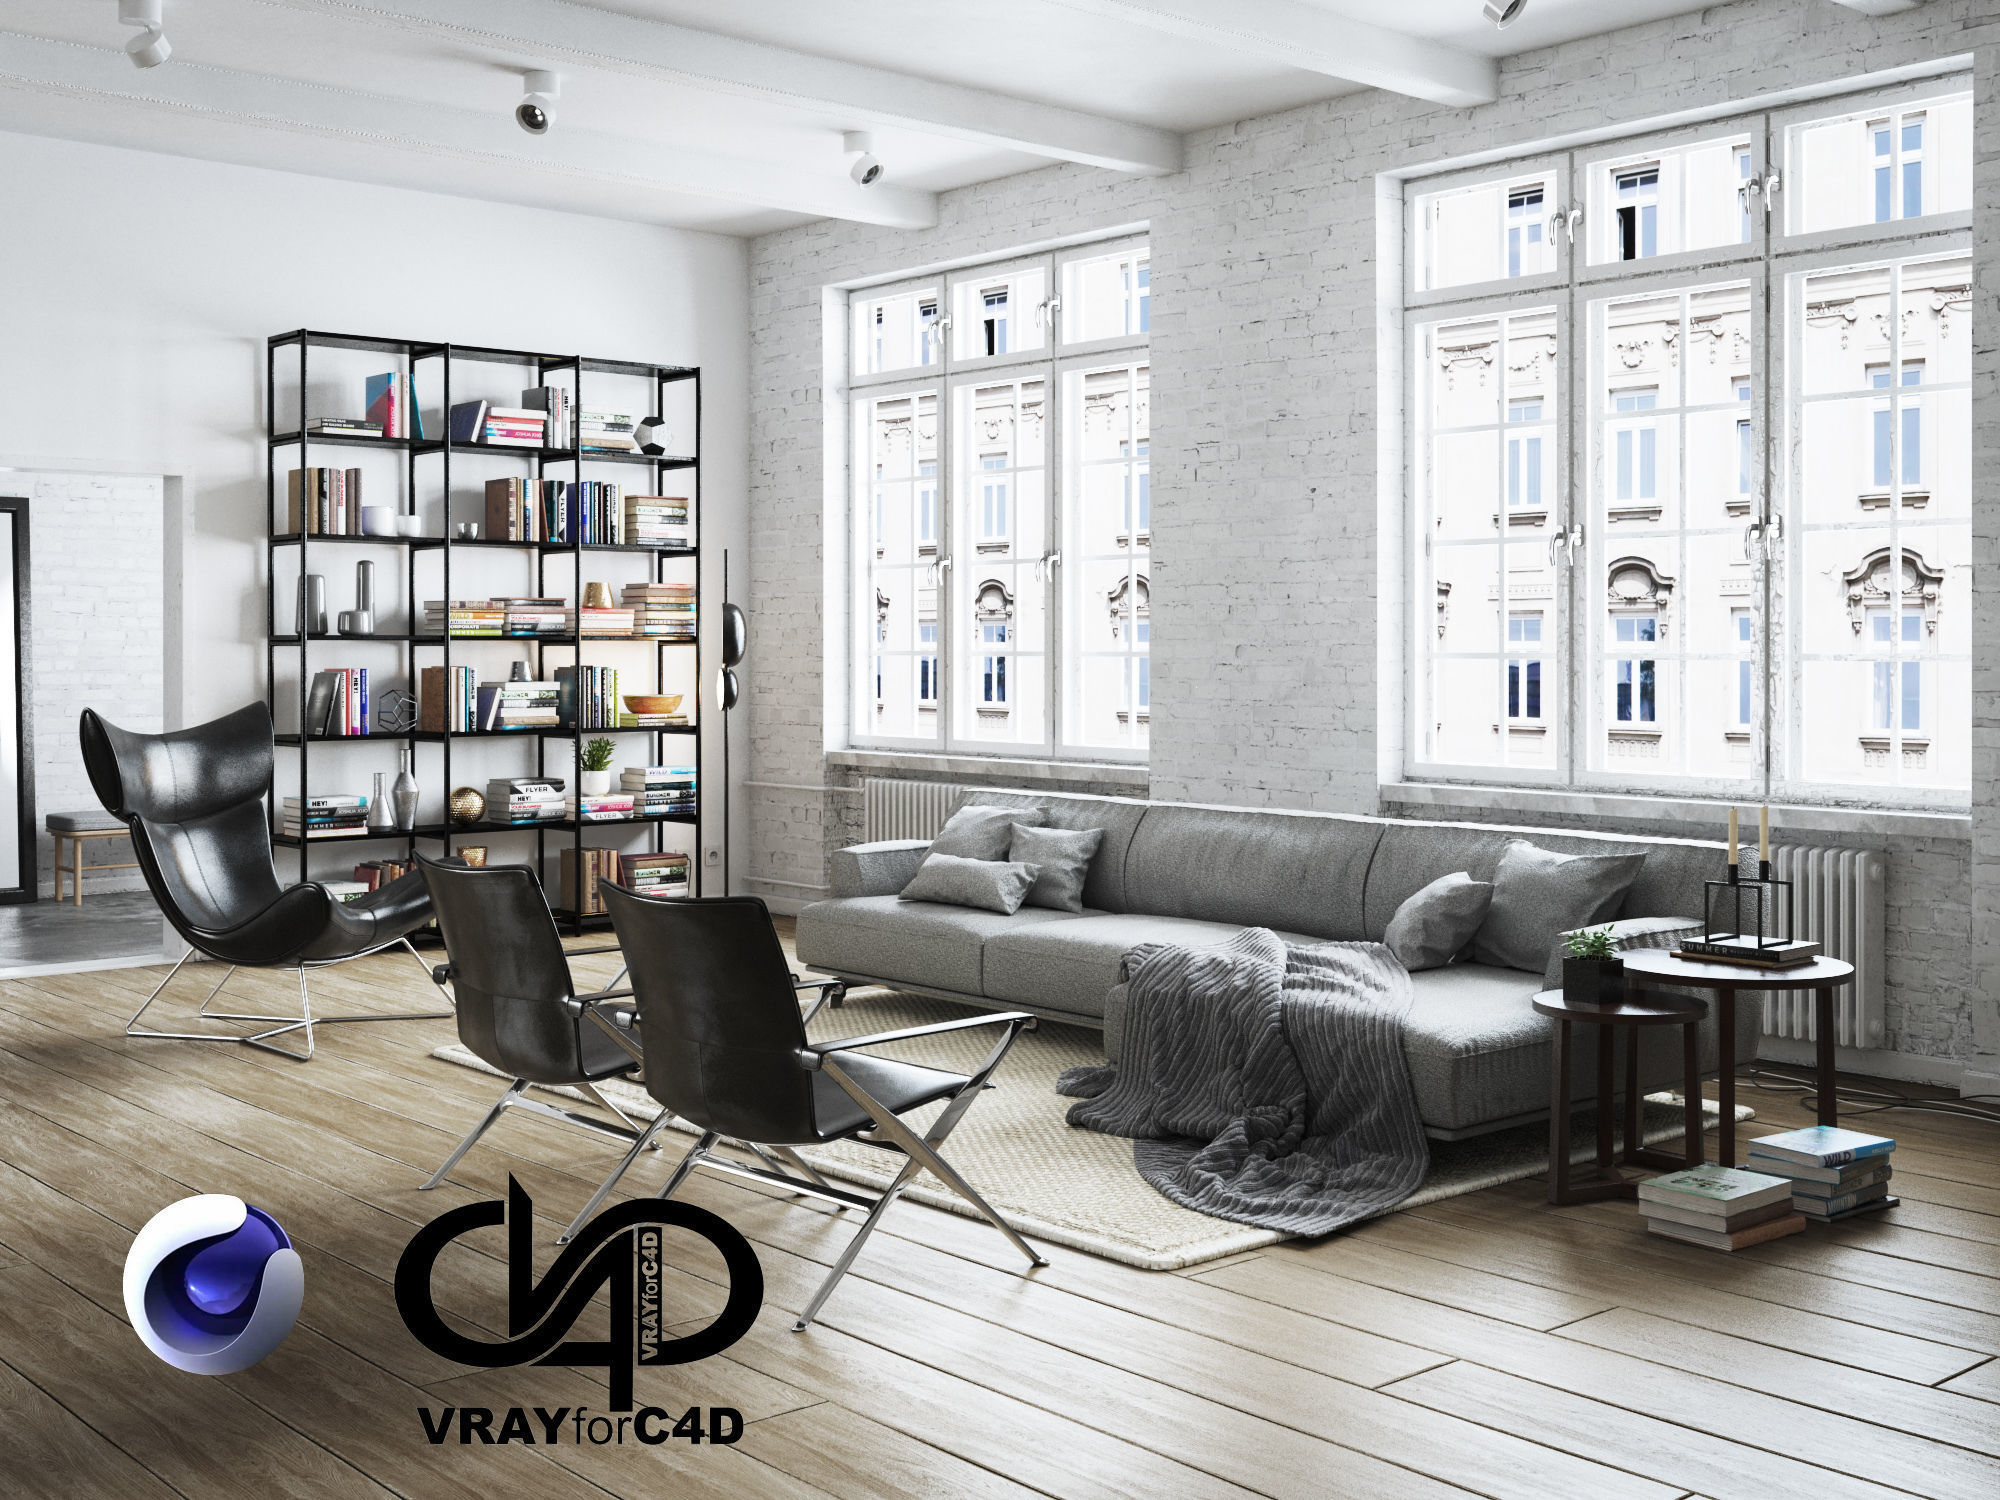 Living Room Interior Scene for Cinema 4D and Vray